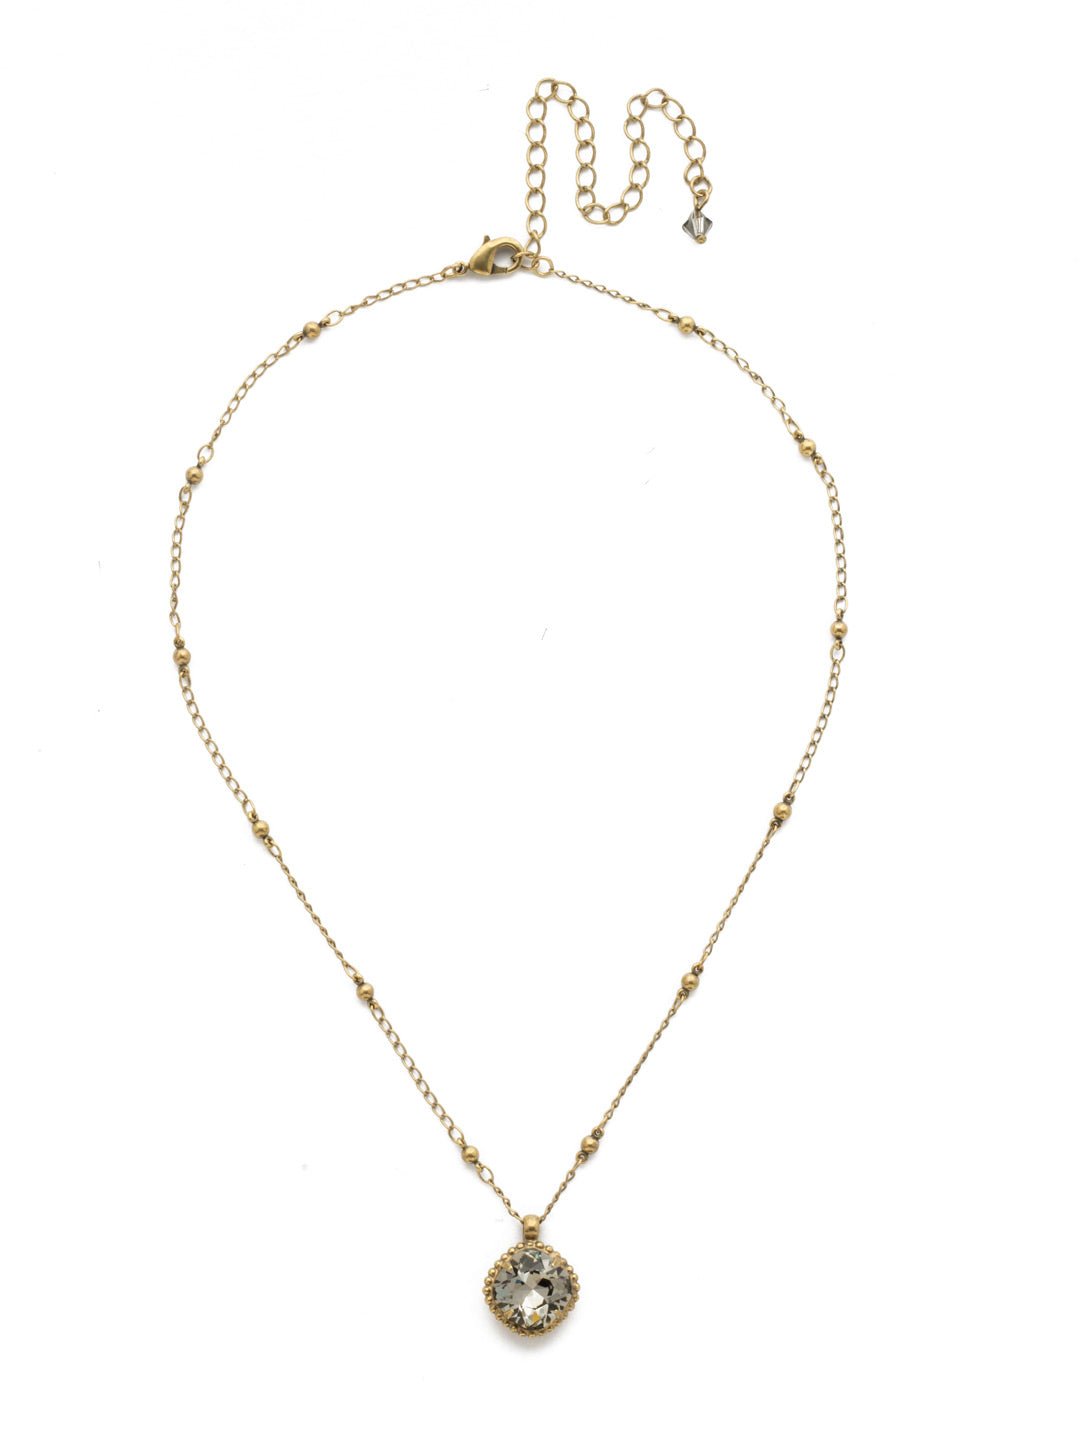 Cushion-Cut Solitaire Necklace - Sorrelli Essentials - NDS50AGBD